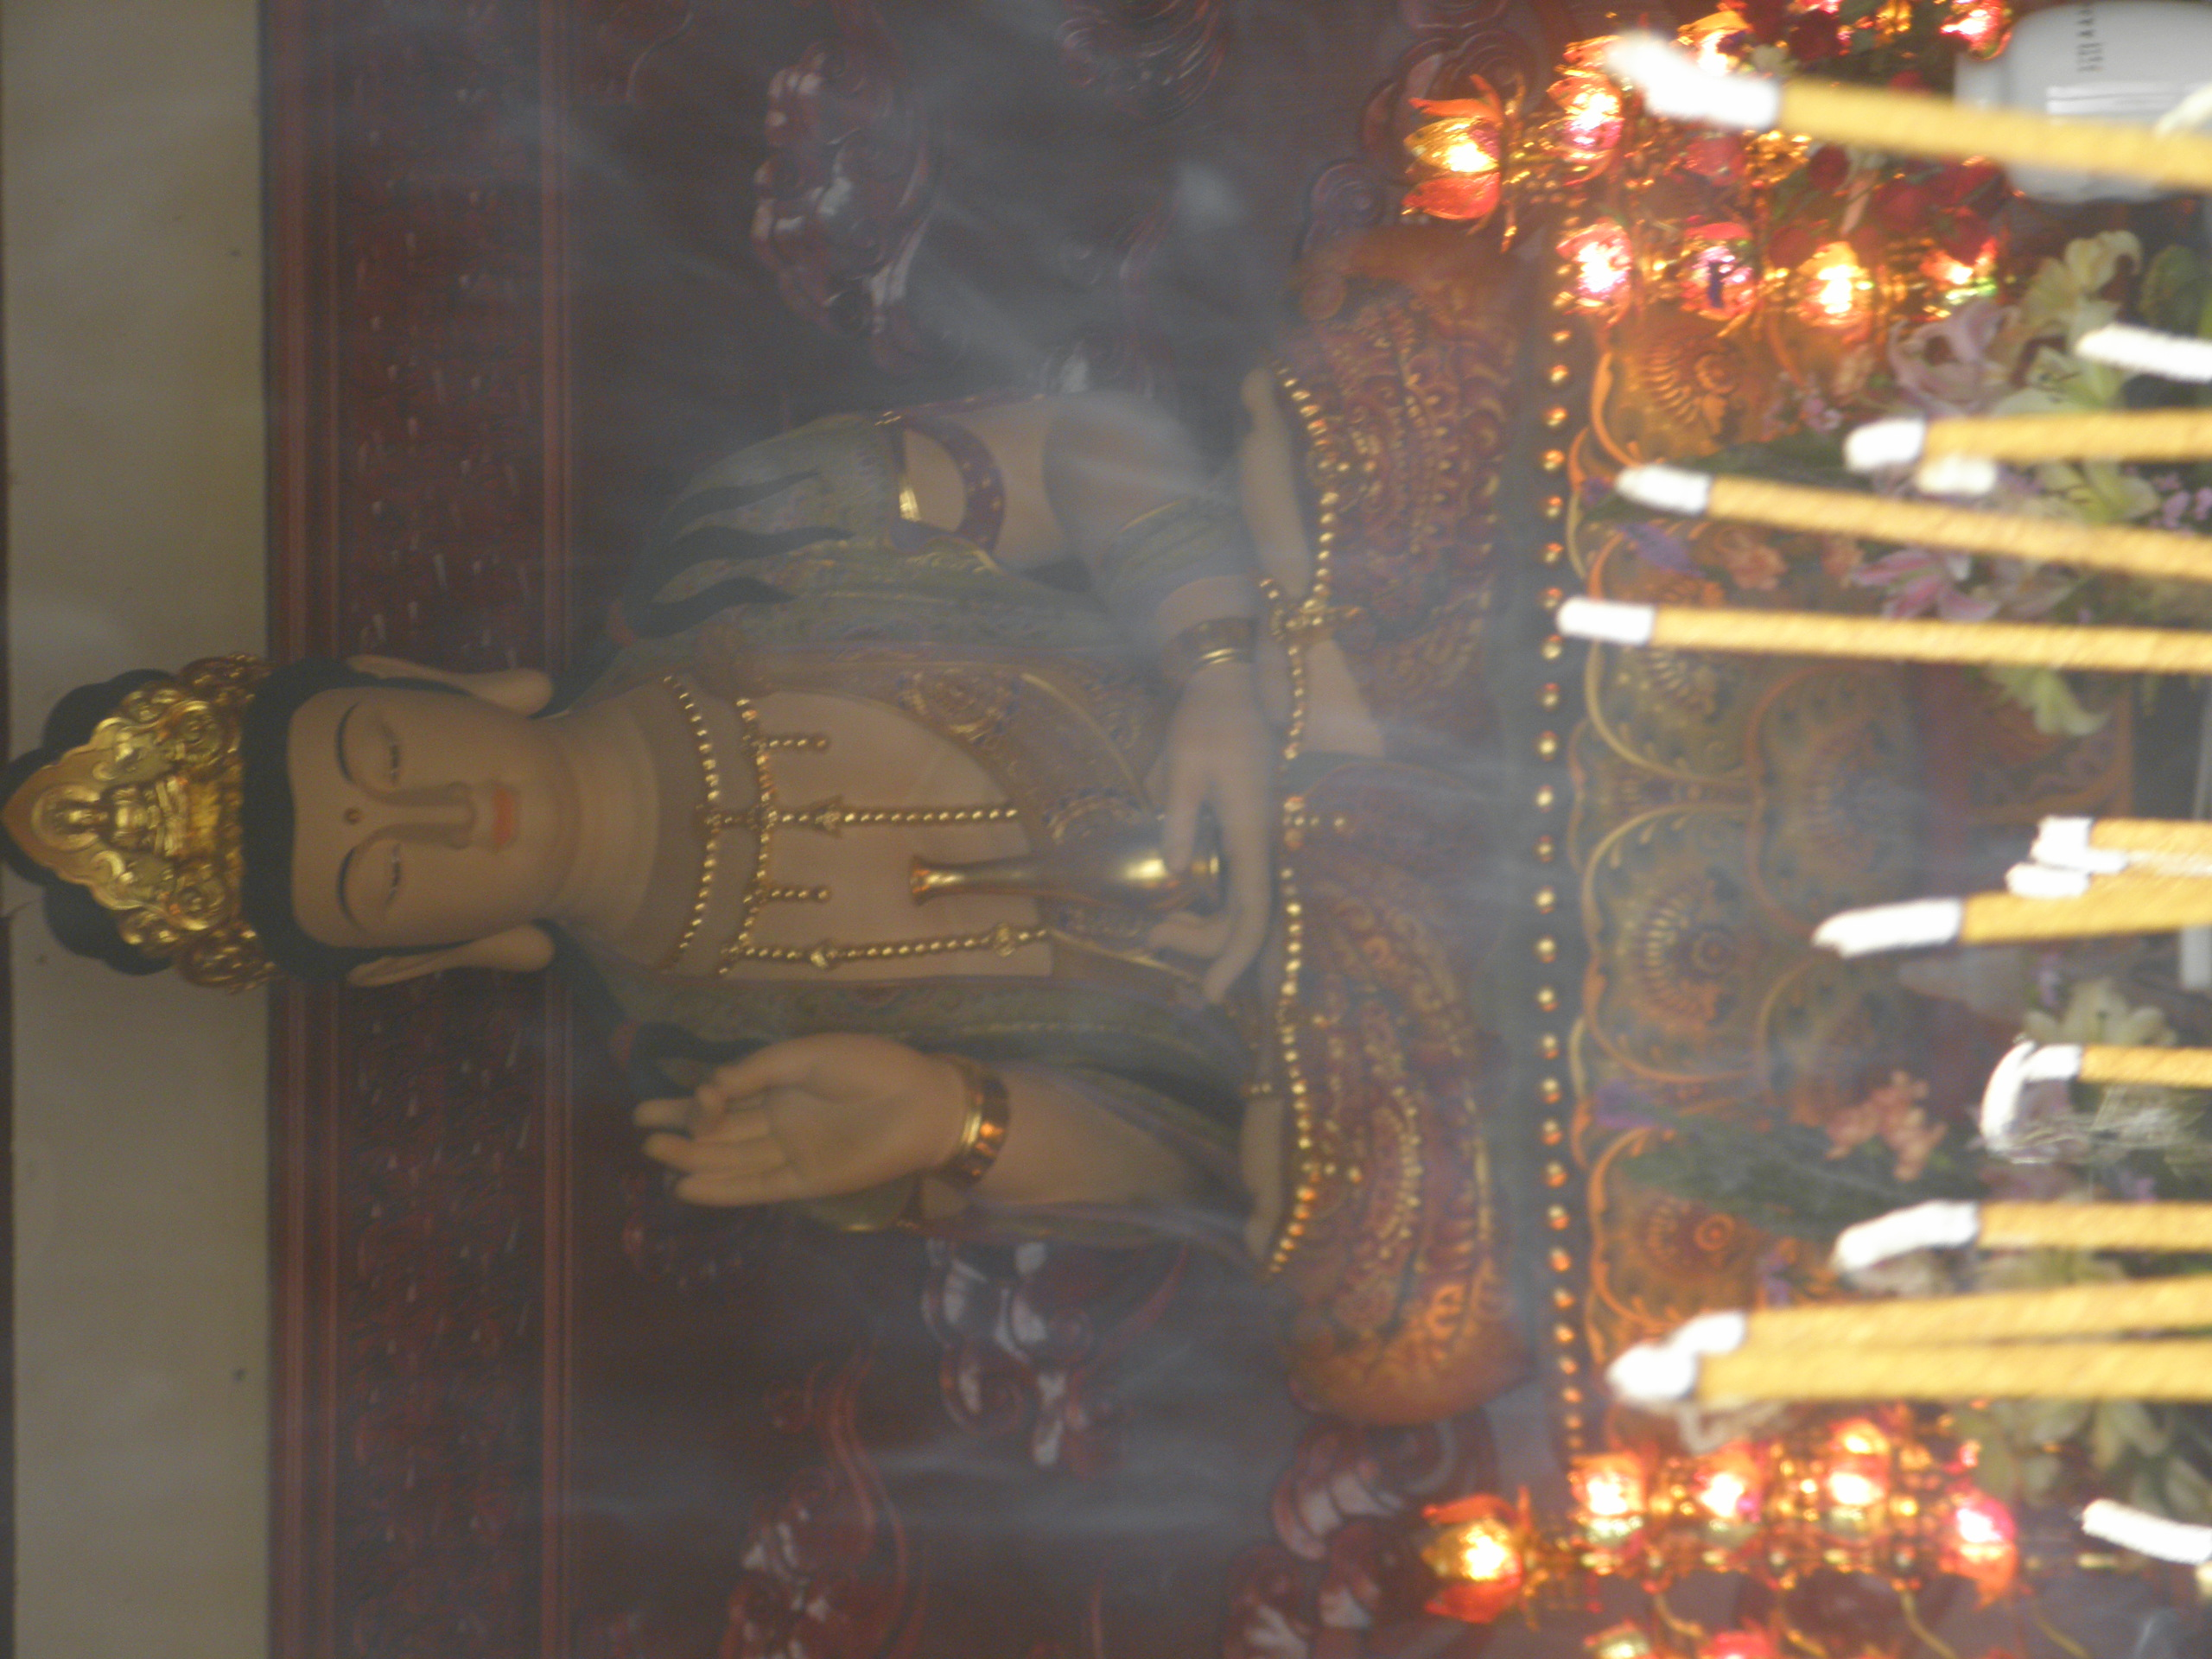 One of the Buddhas _ The Southern Shaolin Temple